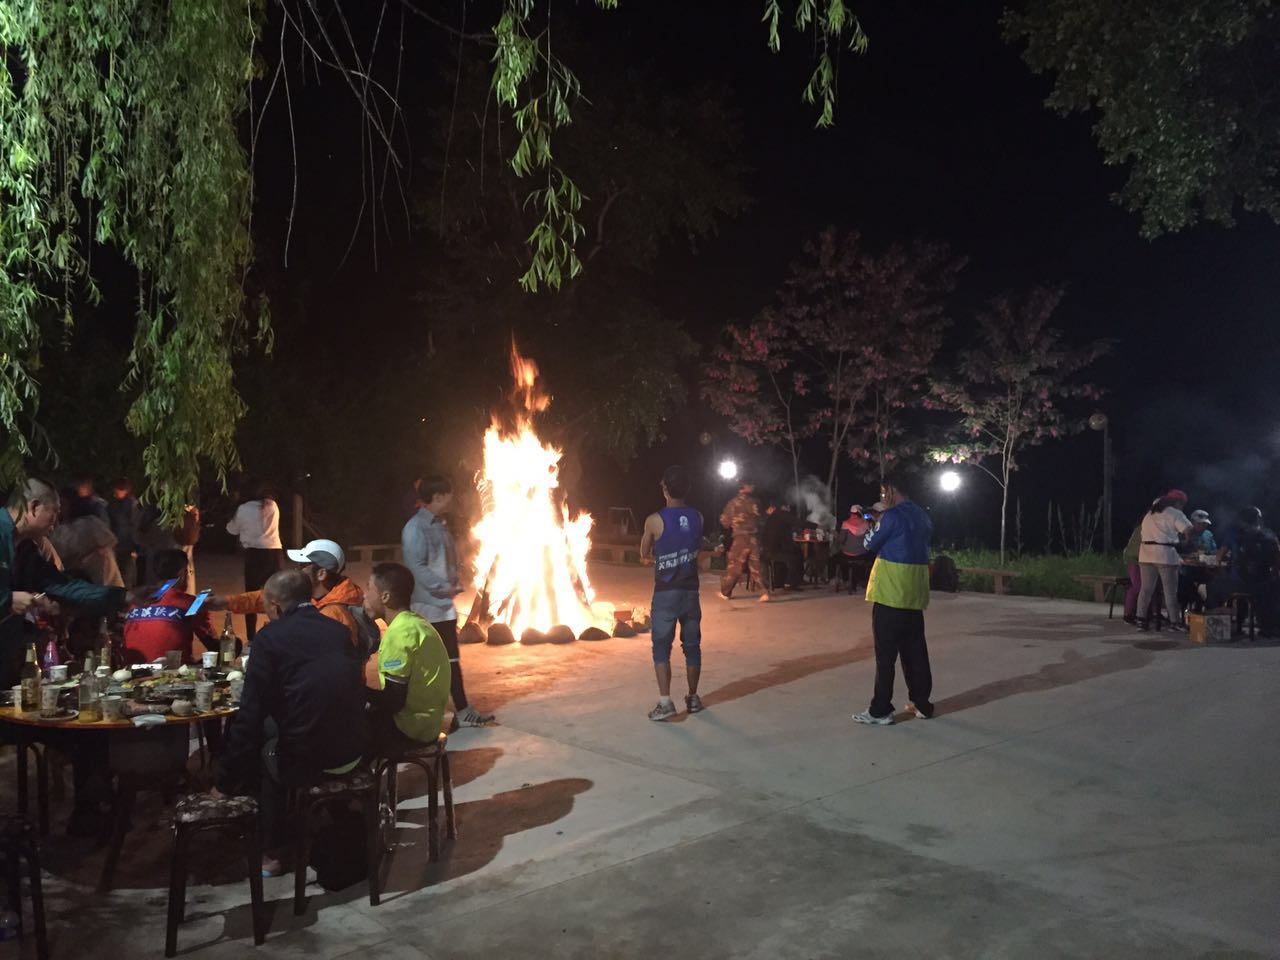 Campfire, roasted meat and beer at the finish of the Baturu Trail!